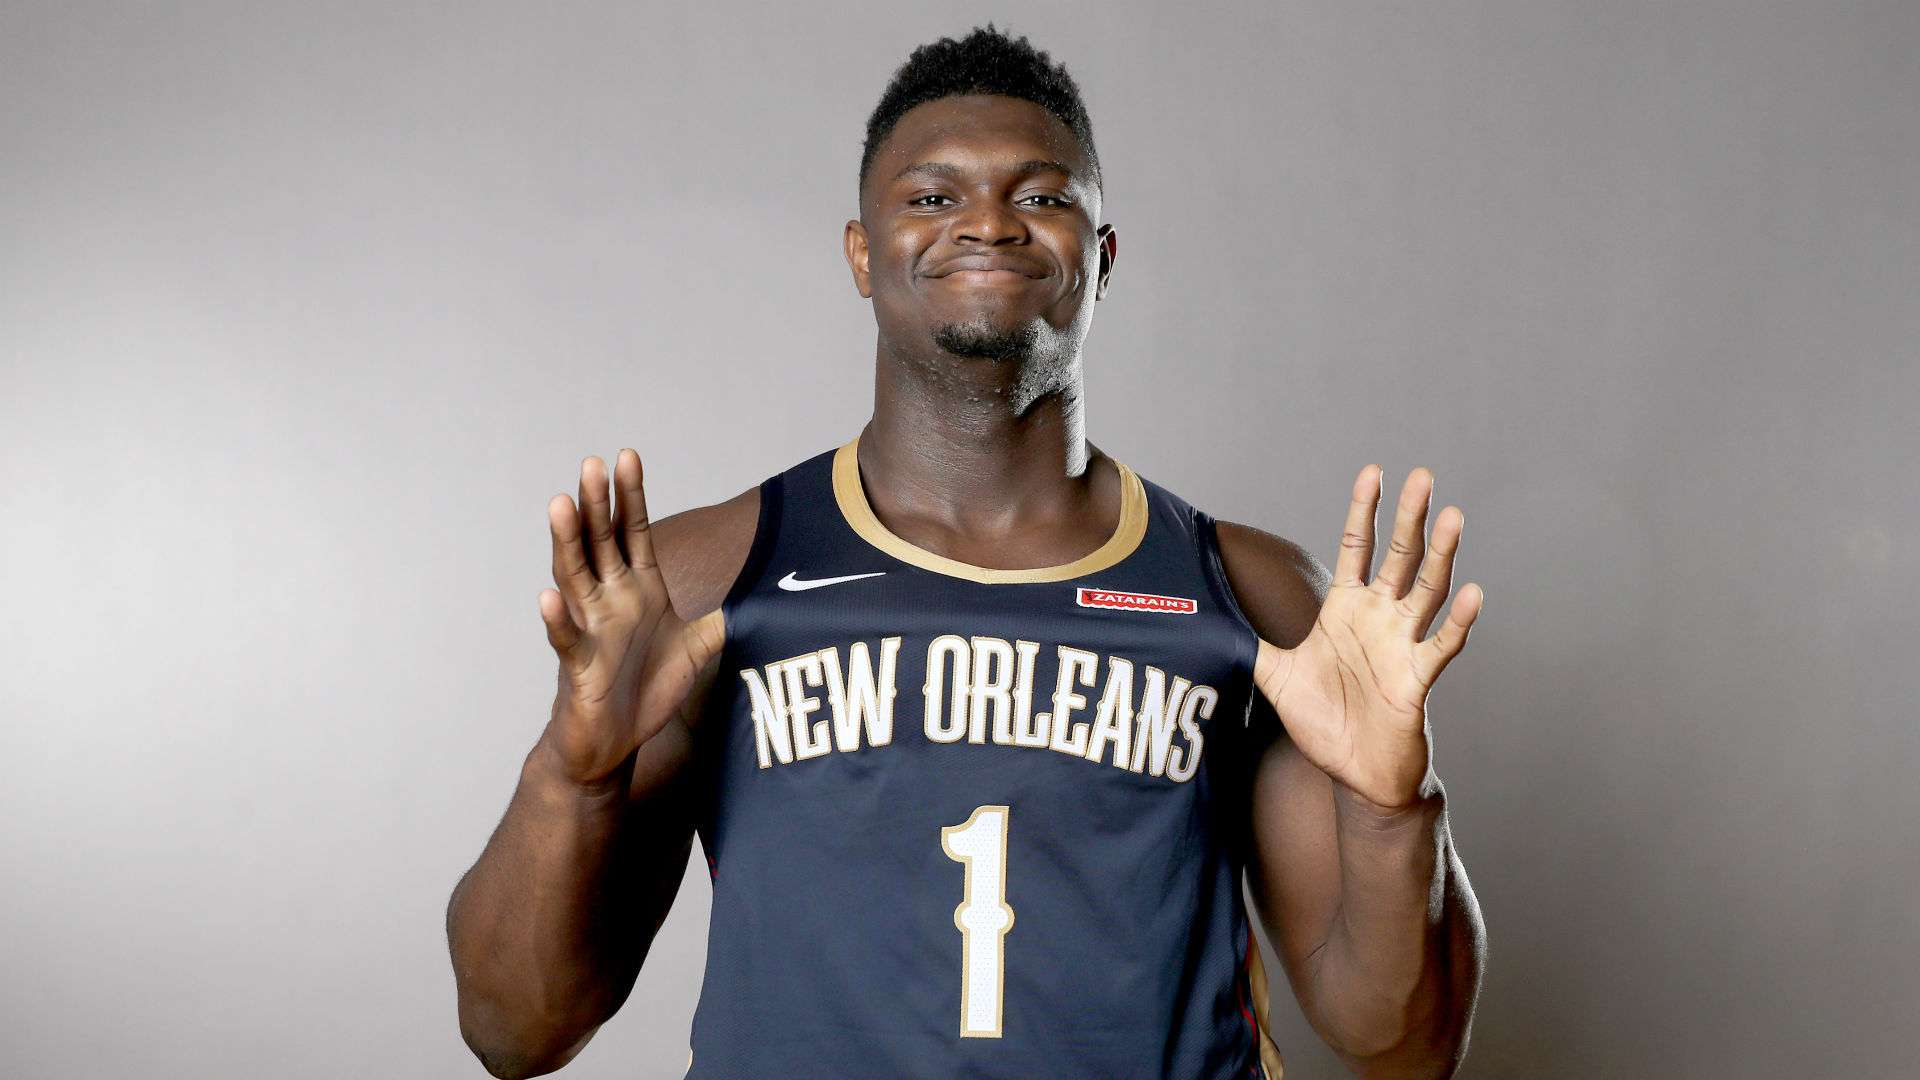 Zion Williamson: NBA Superstar or Overrated? via @PhillyWhat